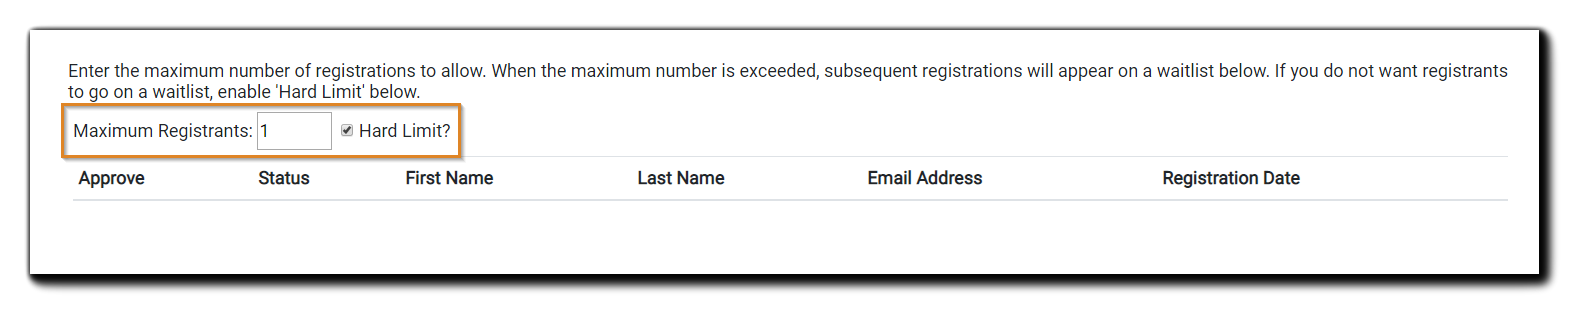 Screenshot: Waitlist dialog, with options for 'hard limit' and 'maximum registrants' highlighted.